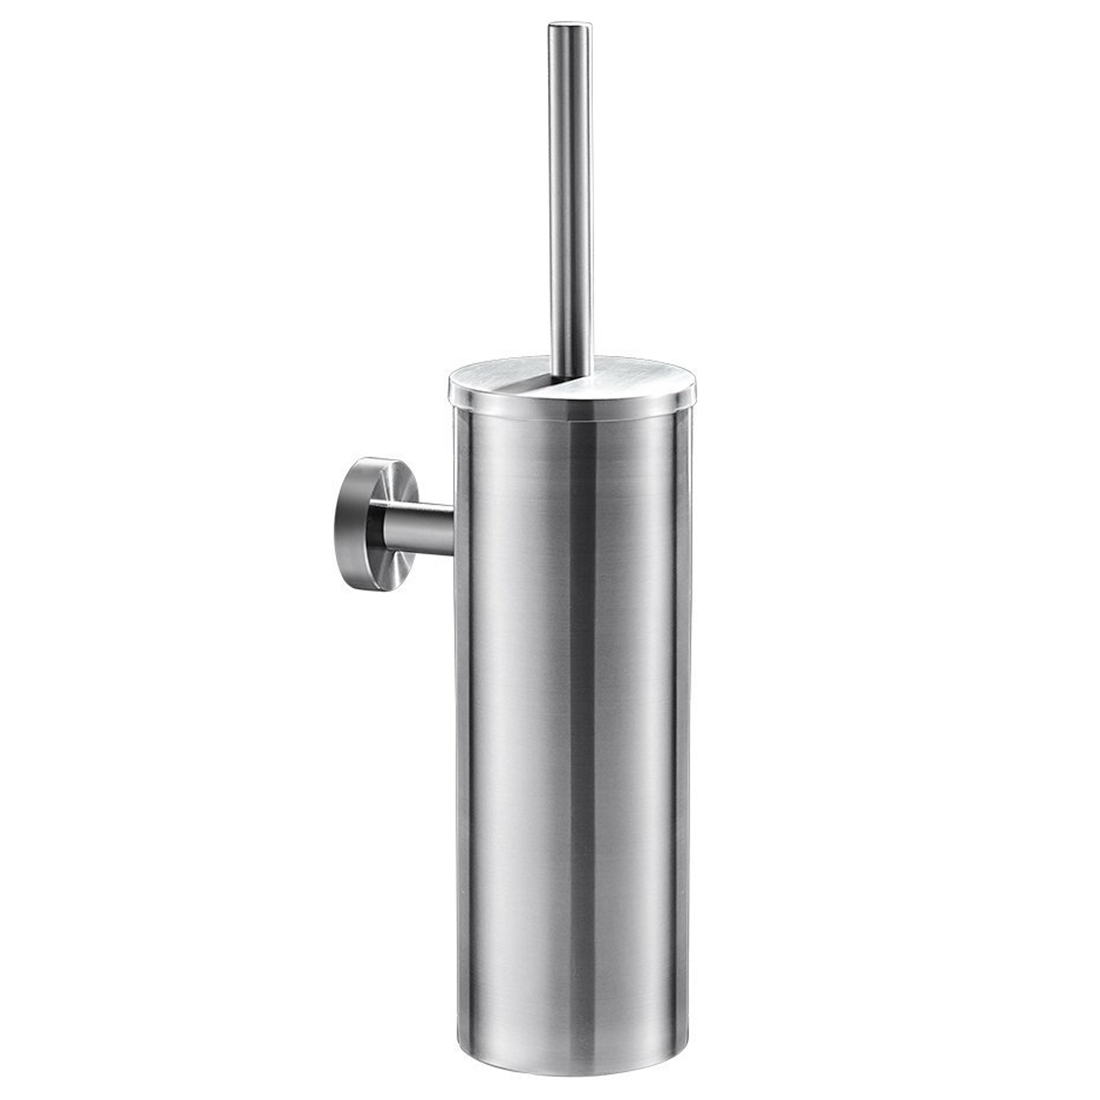 Toilet Brush for Cleaning Black Color with Stainless Steel Wall Mounted Brush Holder Chromed Finish